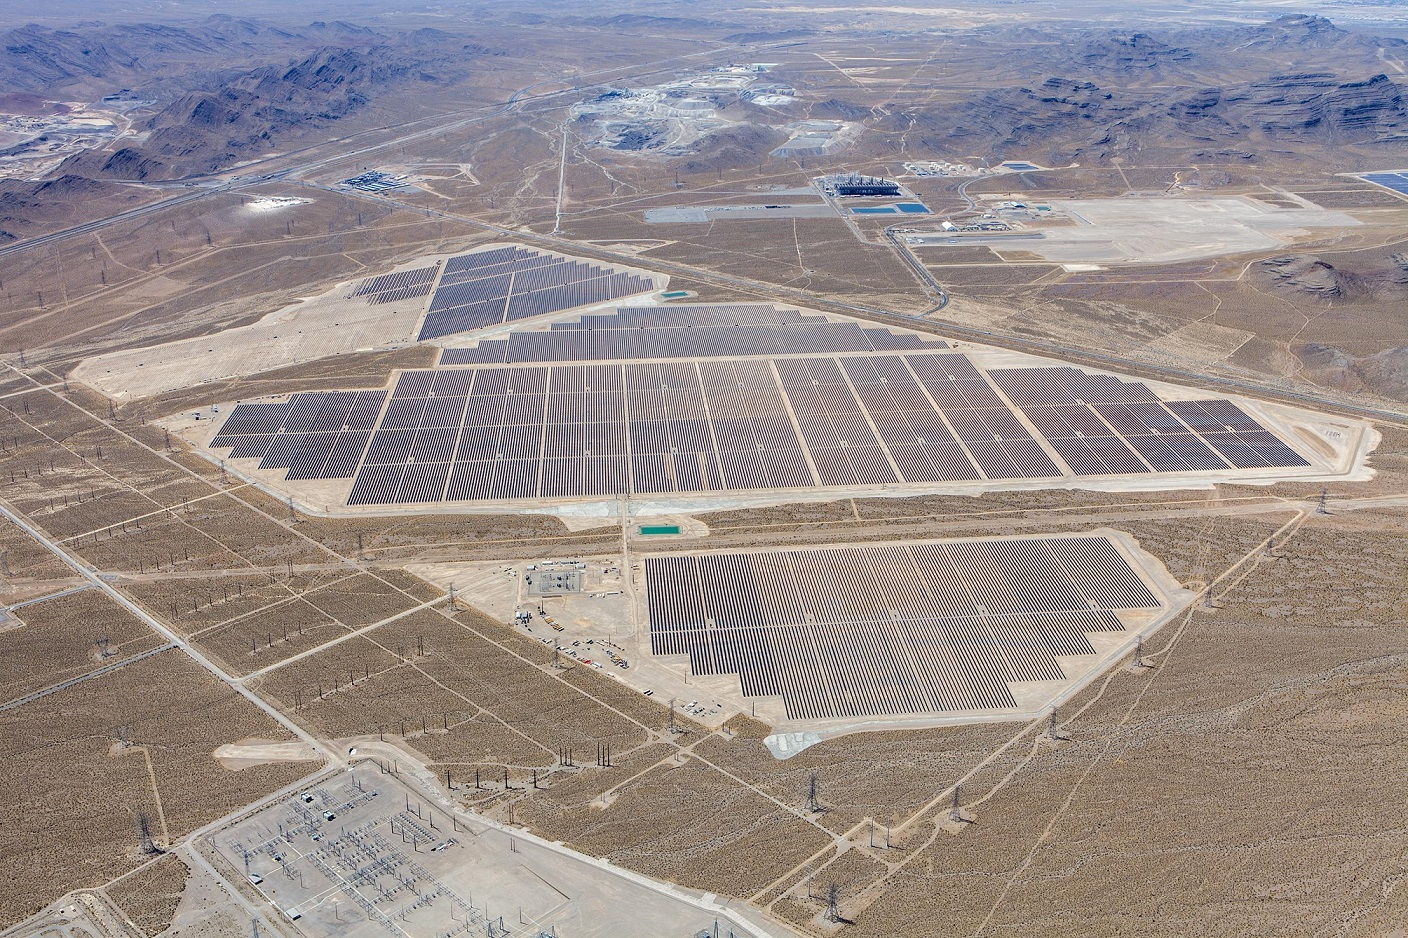 The projects are based in the Dry Lake Solar Energy Zone (SEZ), which is managed by the US Bureau of Land Management (BLM) and use First Solar modules on single-axis trackers. Credit: EDF/First Solar.